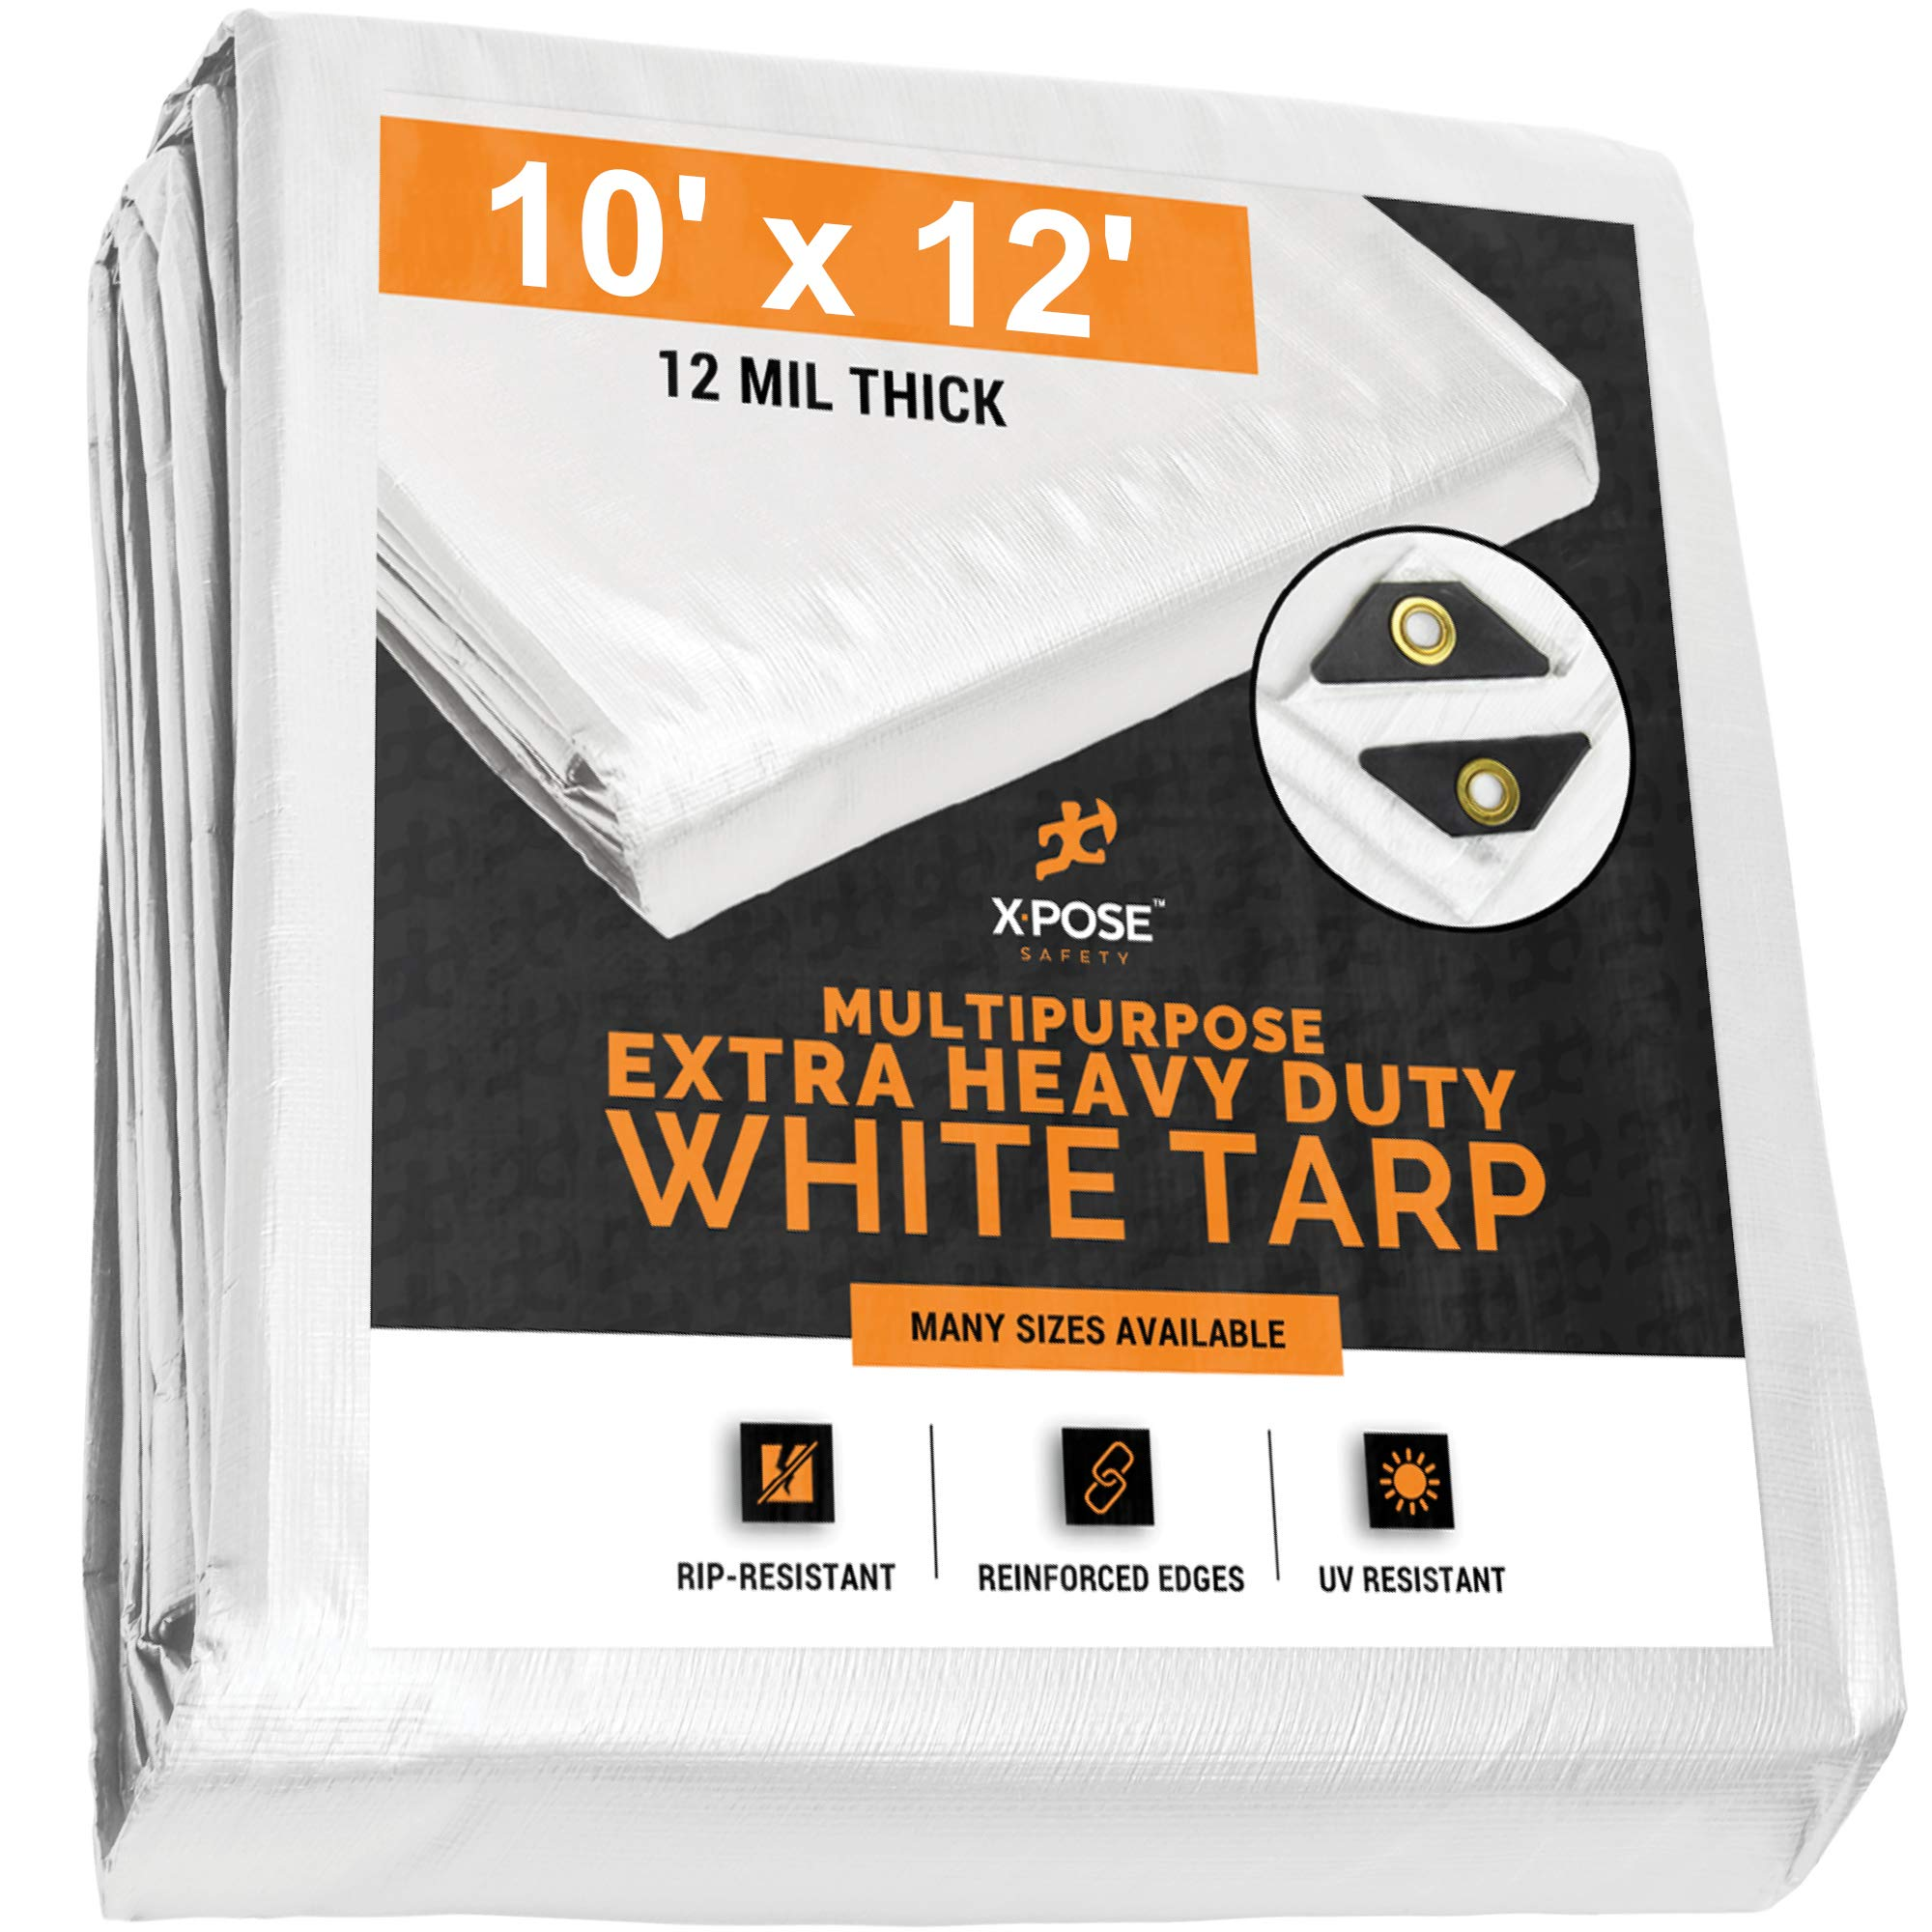 Heavy Duty White Poly Tarp 10' x 12' Multipurpose Protective Cover - Durable, Waterproof, Weather Proof, Rip and Tear Resistant - Extra Thick 12 Mil Polyethylene - by Xpose Safety by Xpose Safety